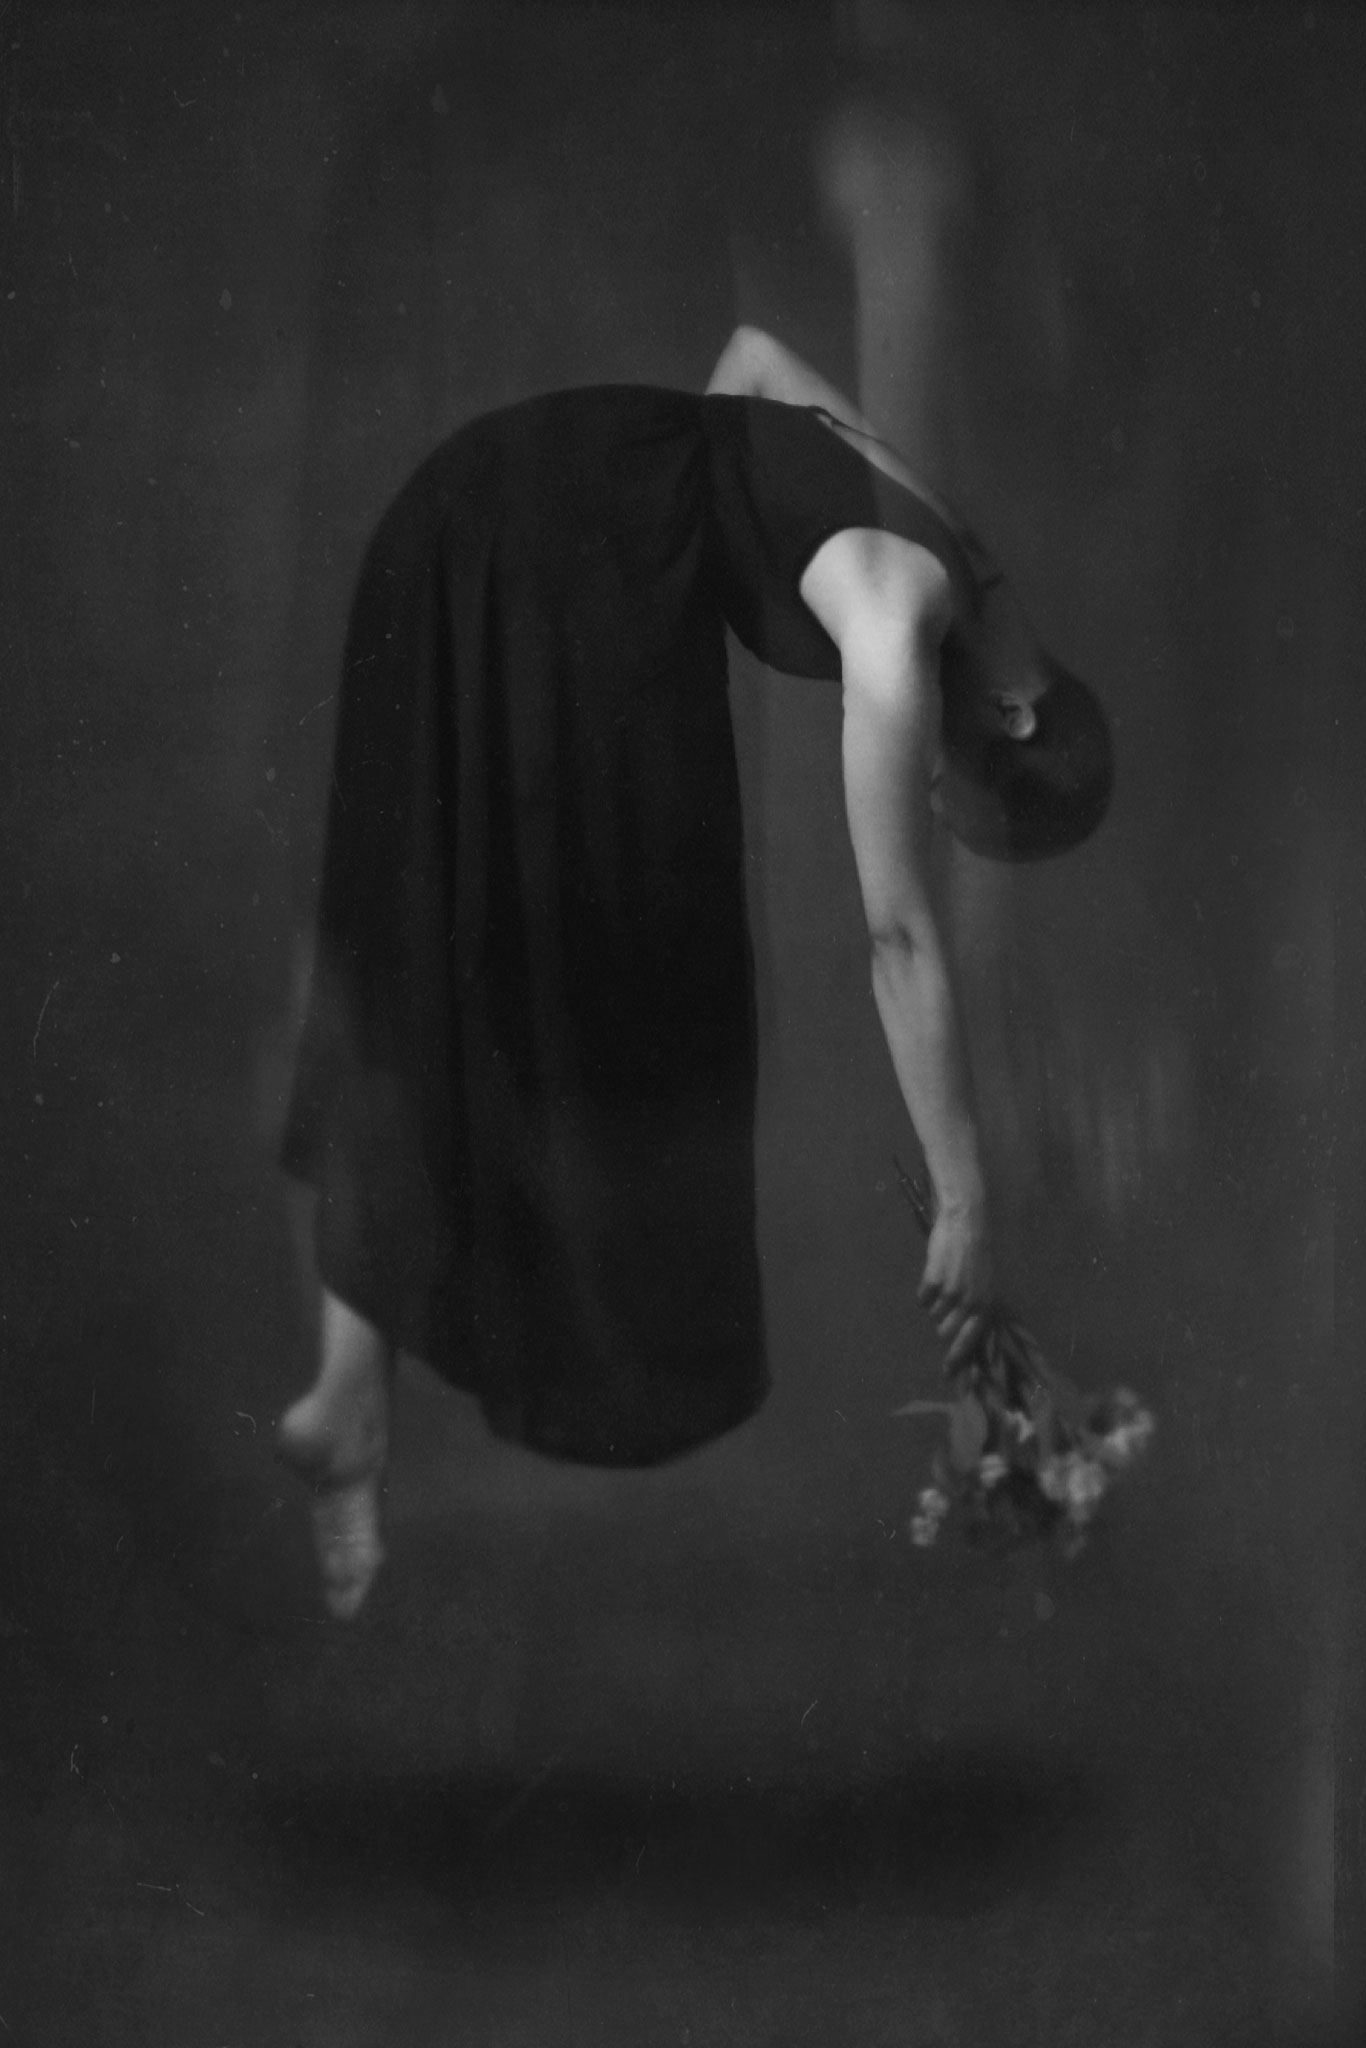 Josephine_Cardin_article_09